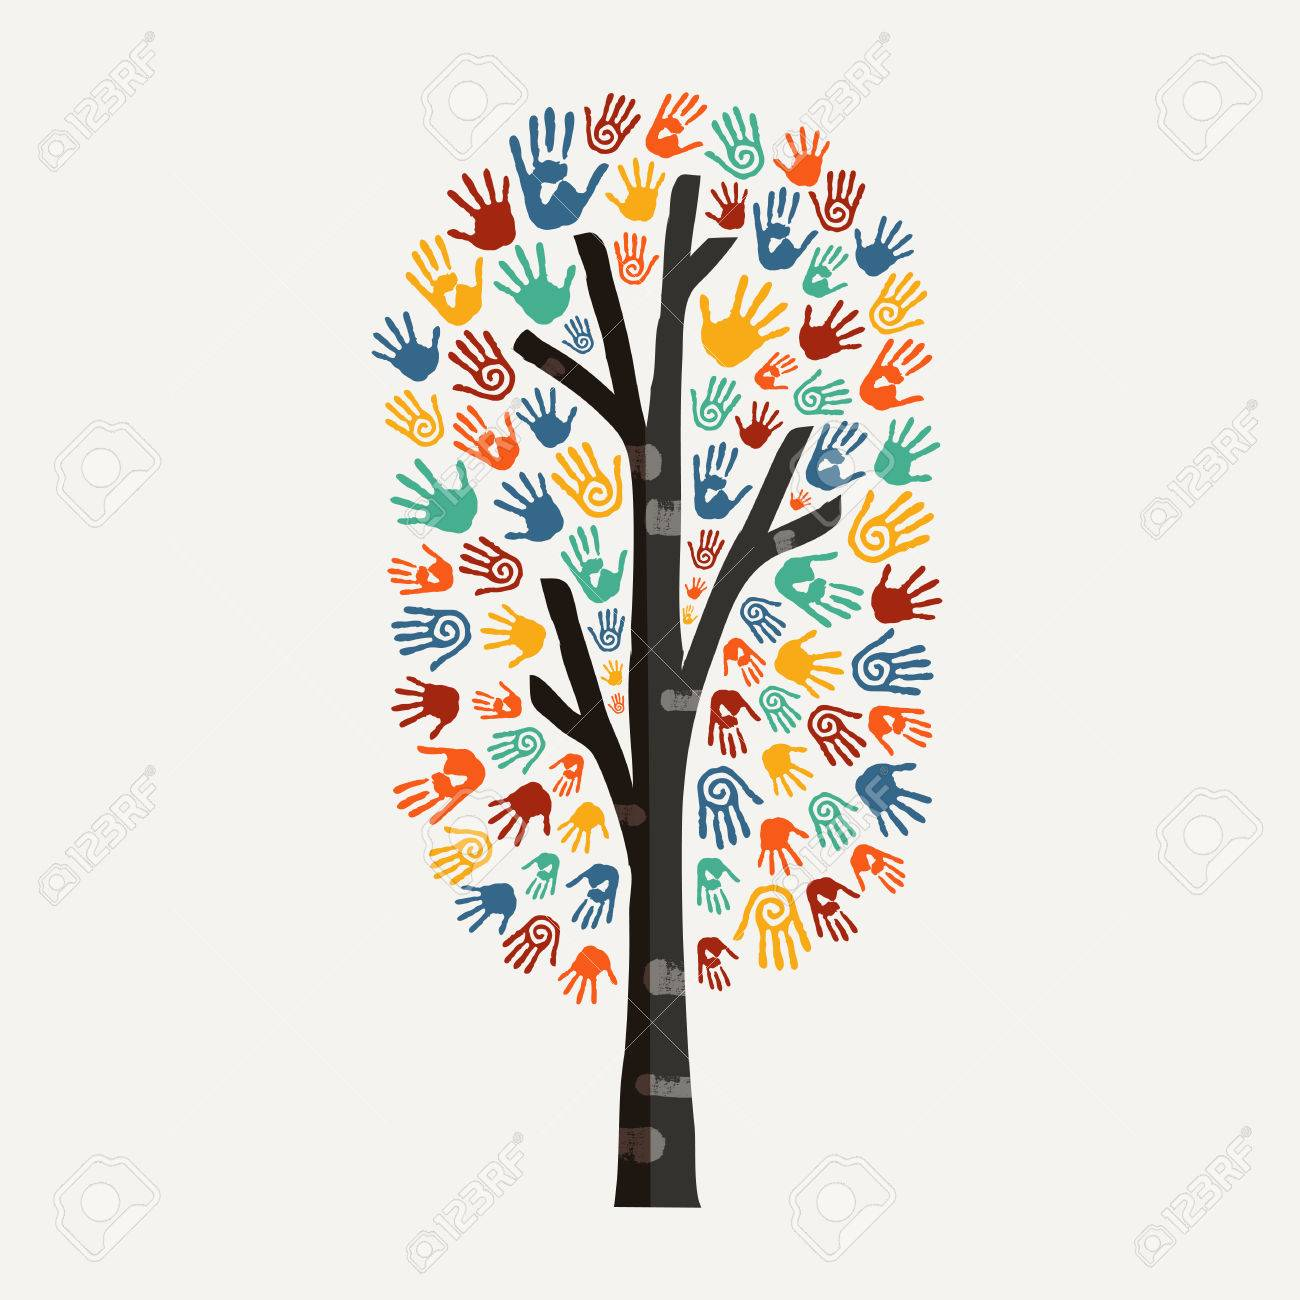 Hand Tree With Colorful Handprint Art Diverse Community Concept Royalty Free Cliparts Vectors And Stock Illustration Image 79420334